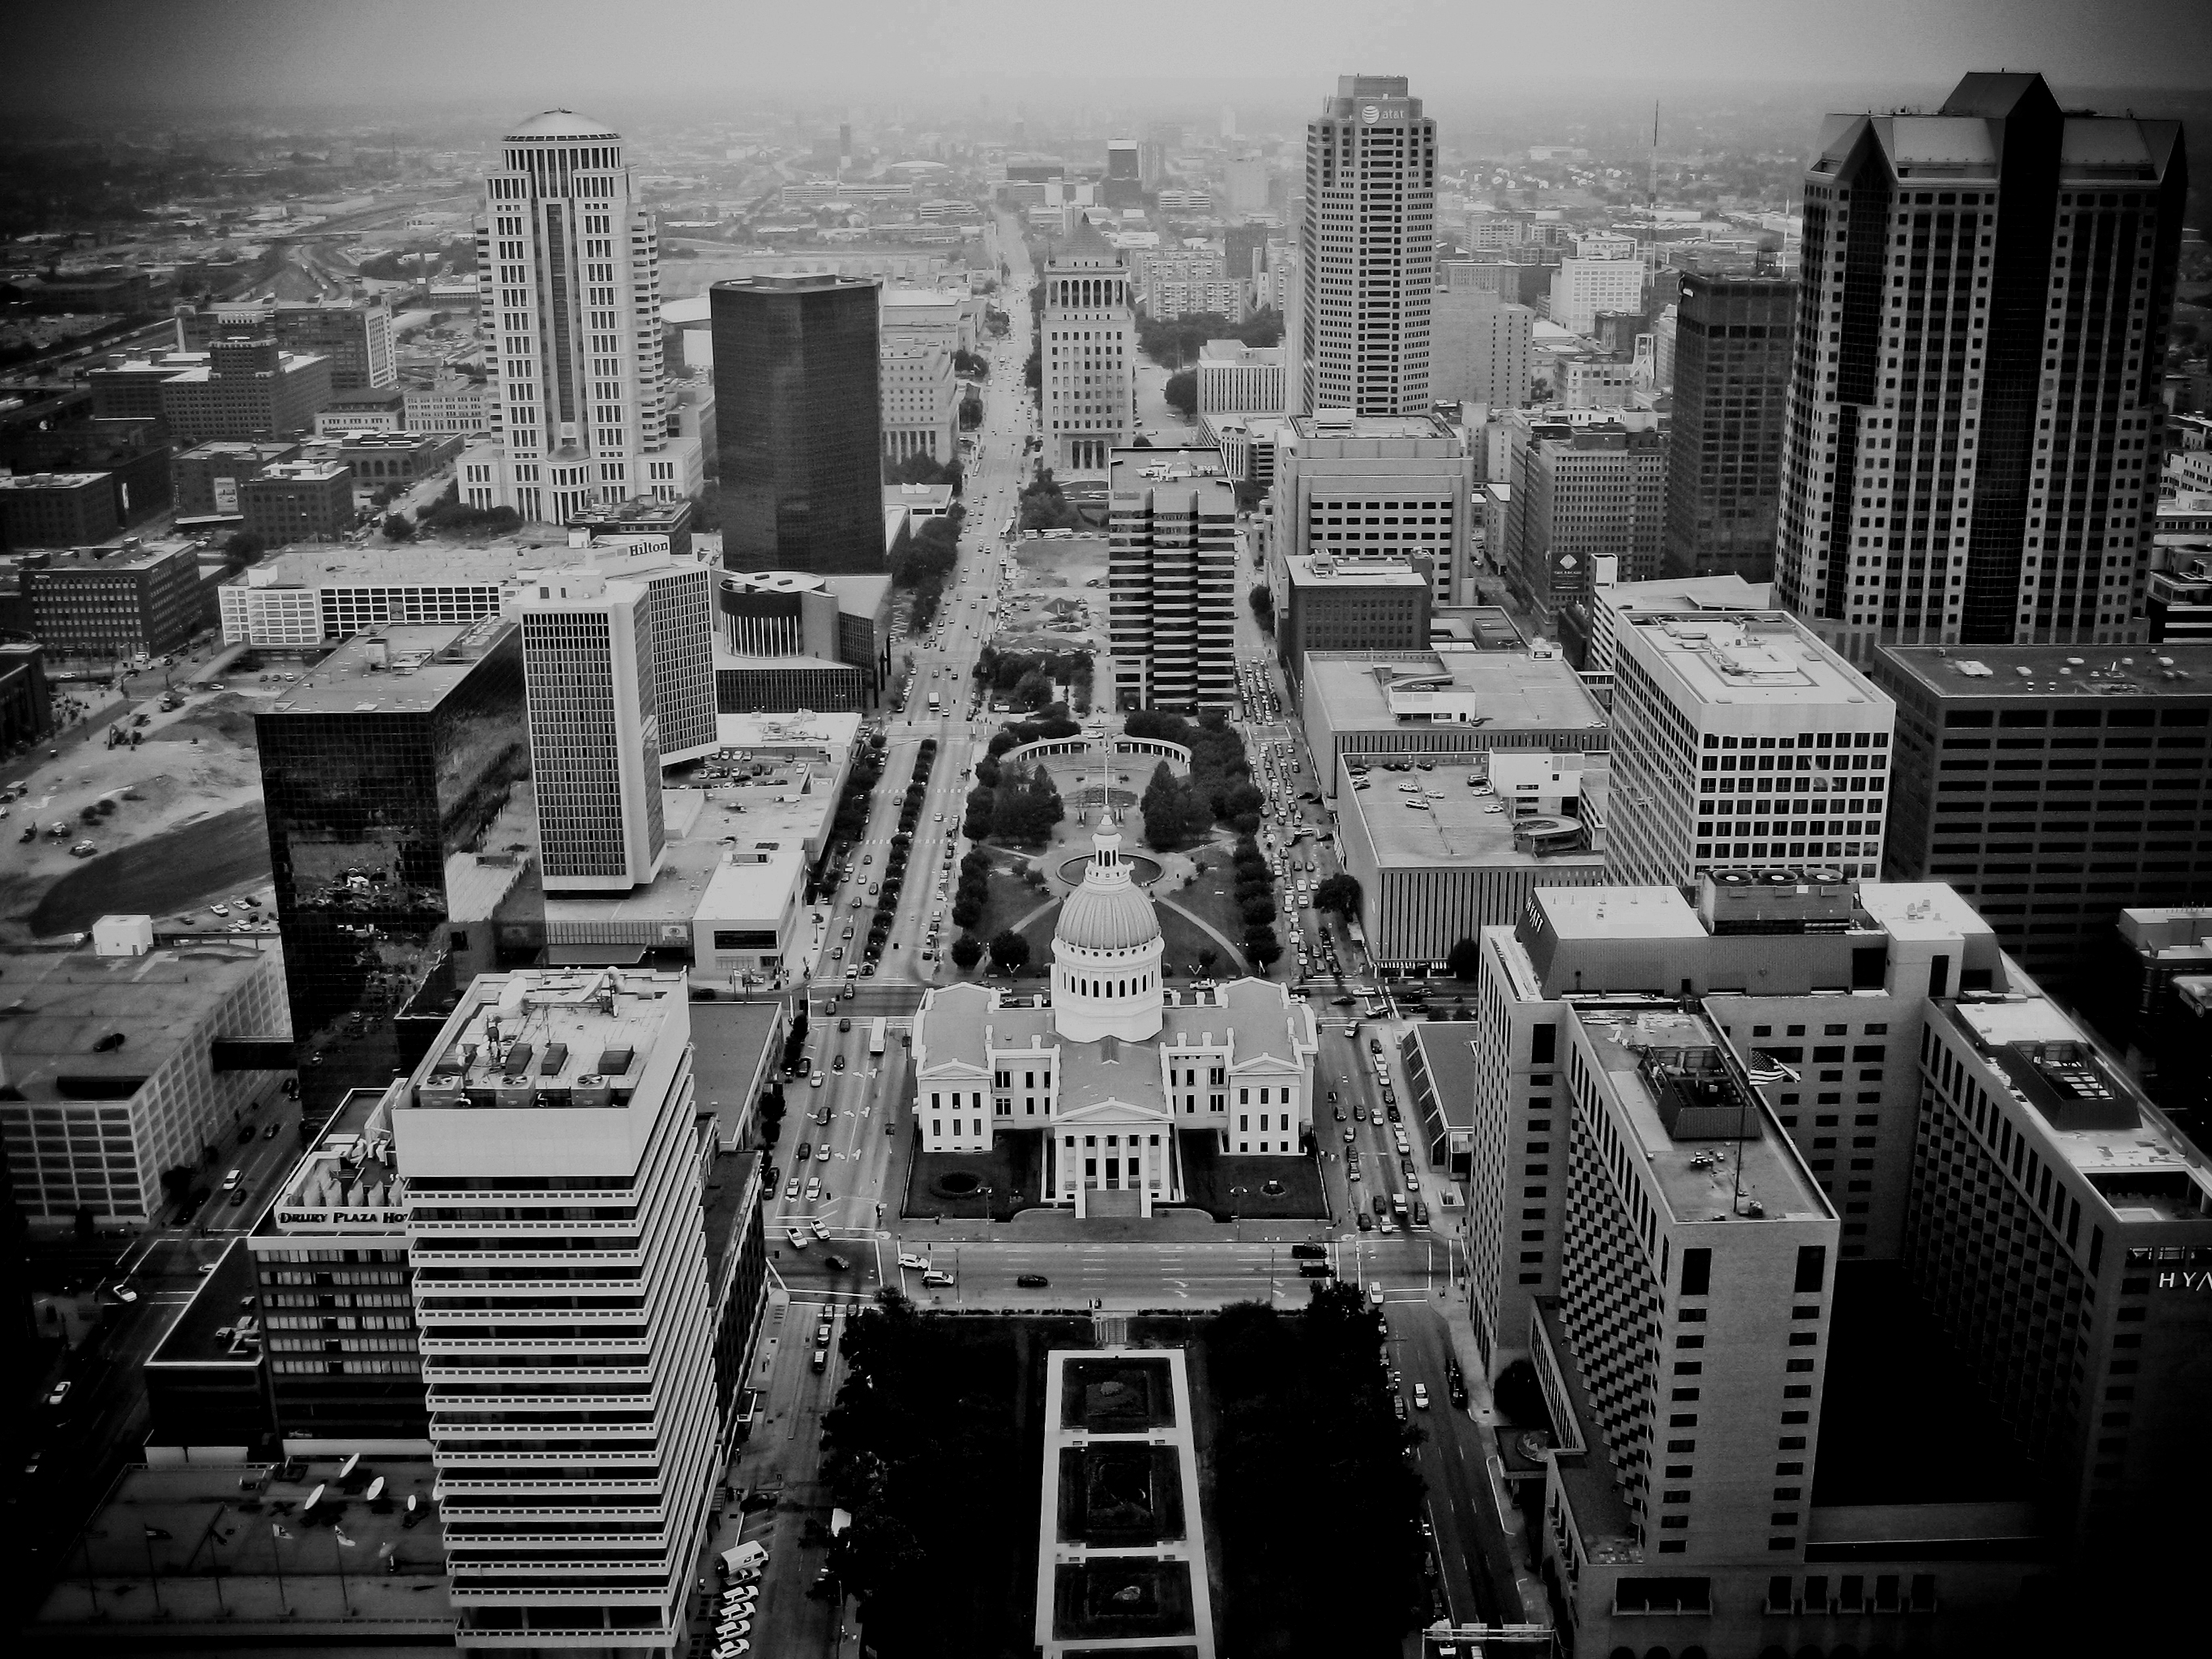 Black and white Arial view of government buildings in the center of a city.